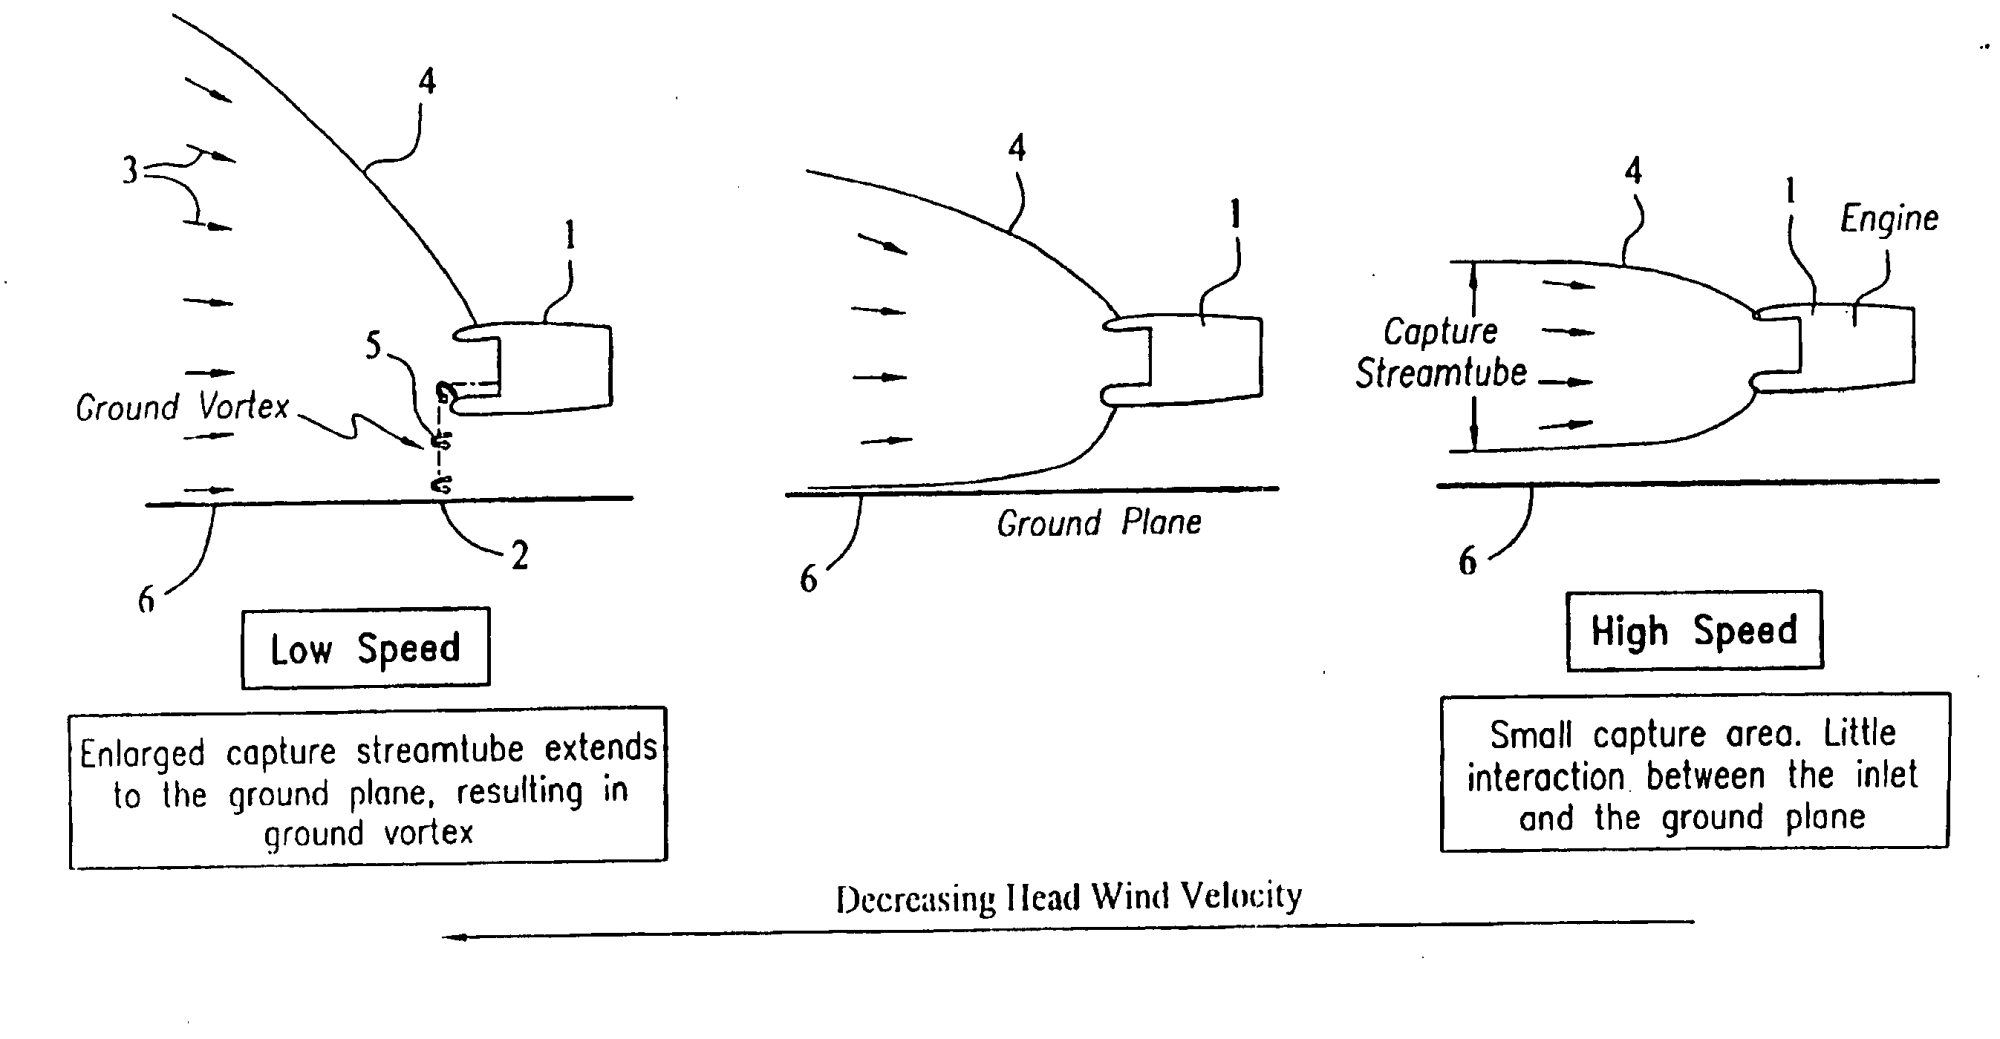 hight resolution of image from patent application of active ground vortex suppression system for an aircraft engine ep 1413721 b1